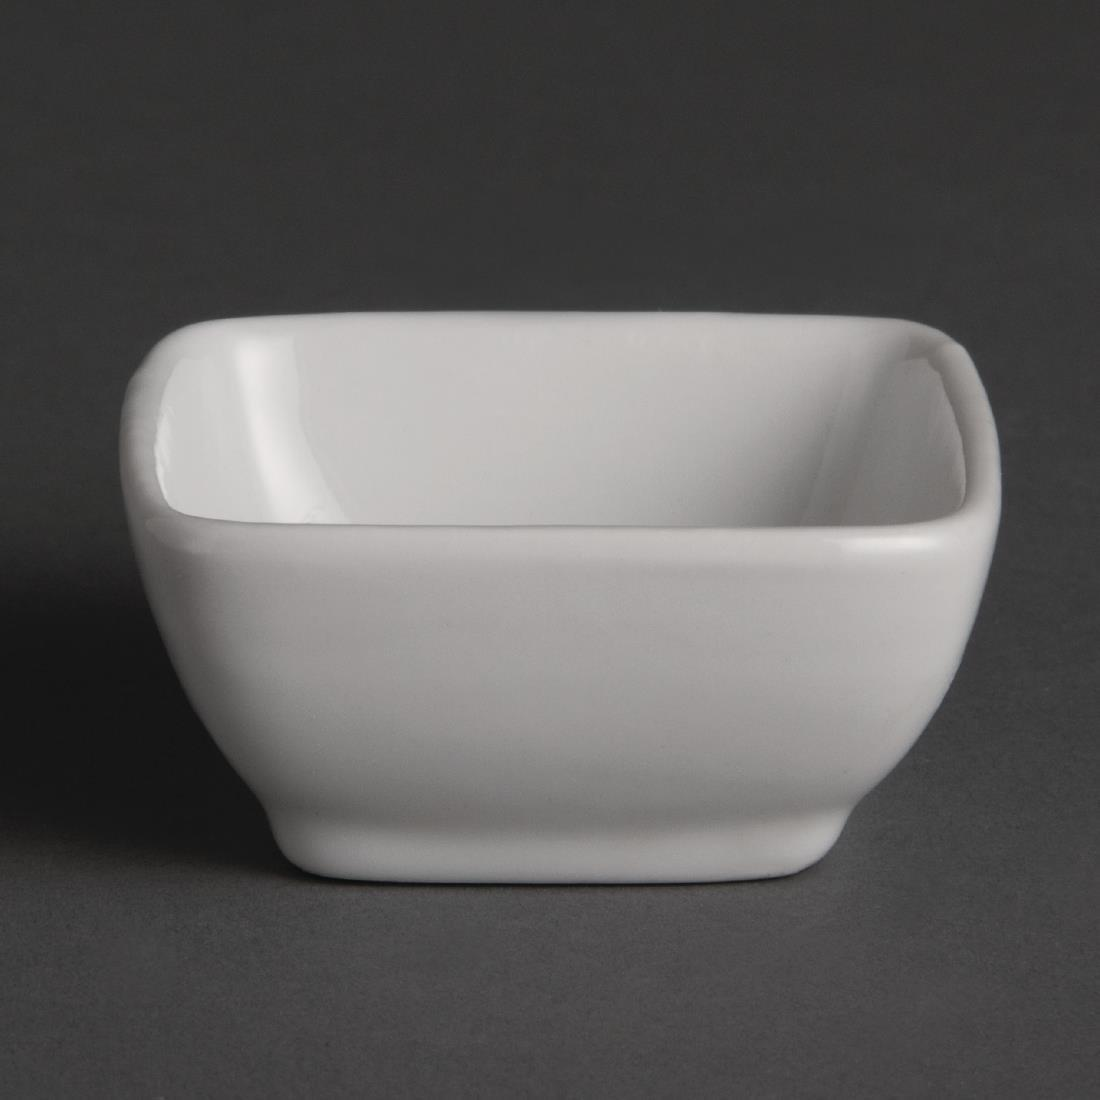 Y137 - Olympia Miniature Rounded Square Dish